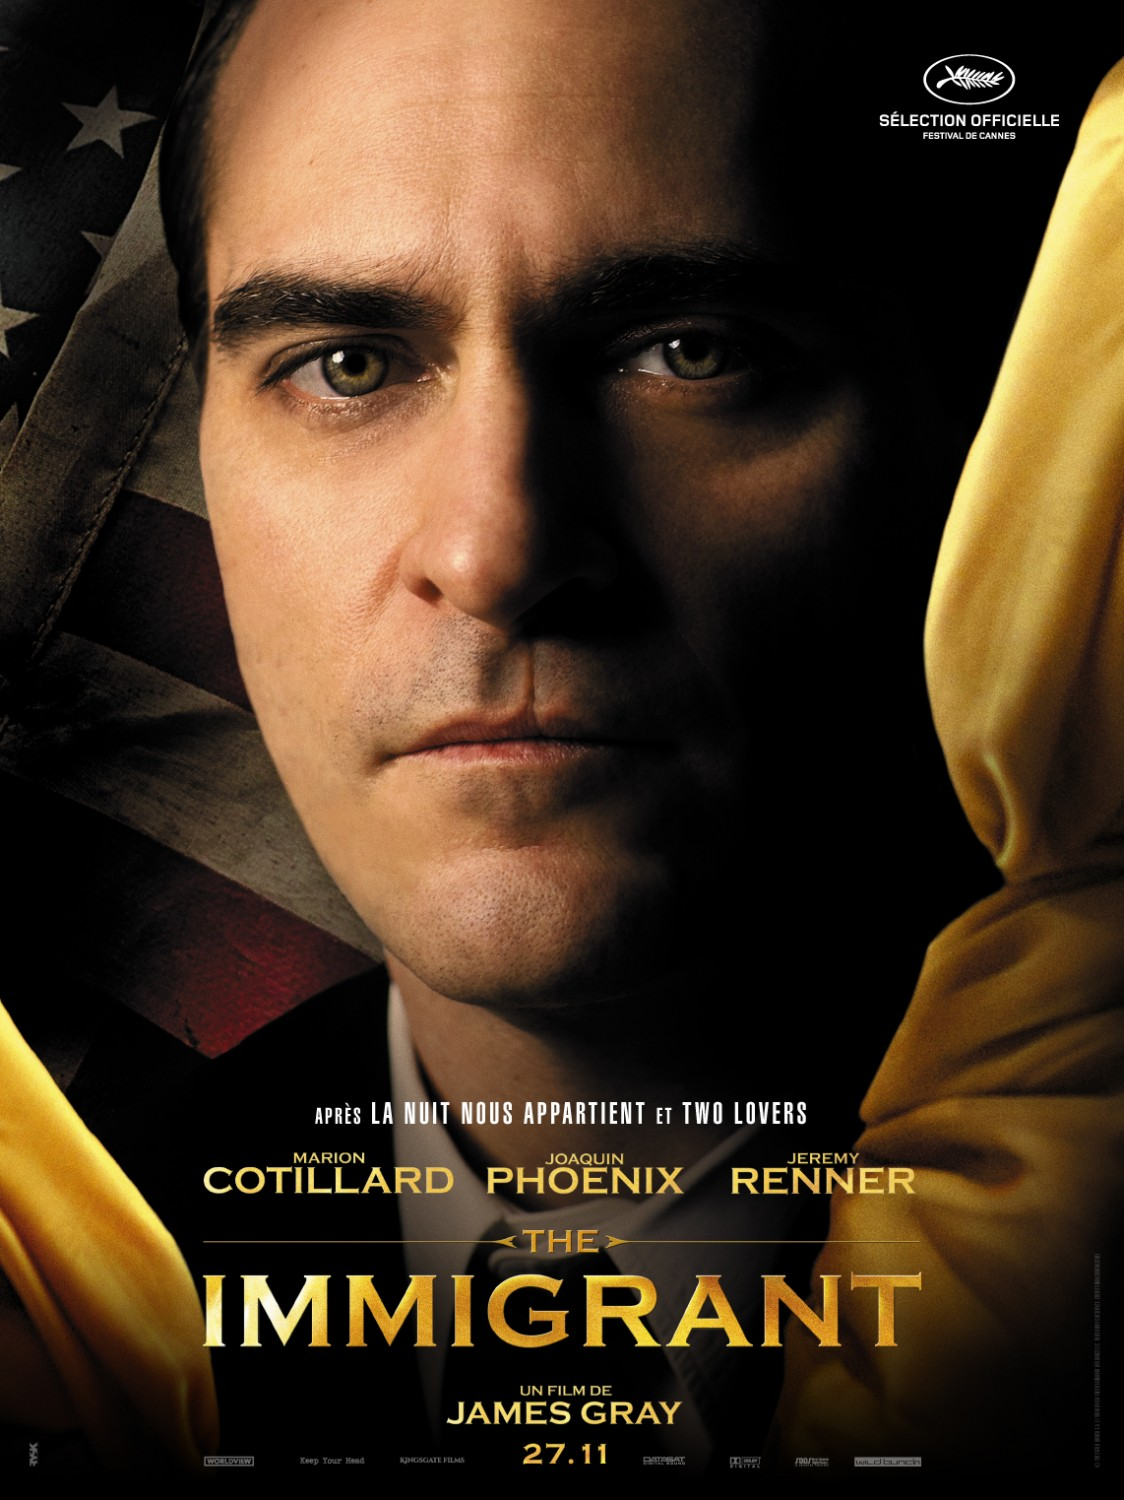 THE IMMIGRANT-Official Poster Banner PROMO CHAR-16OUTUBRO2013